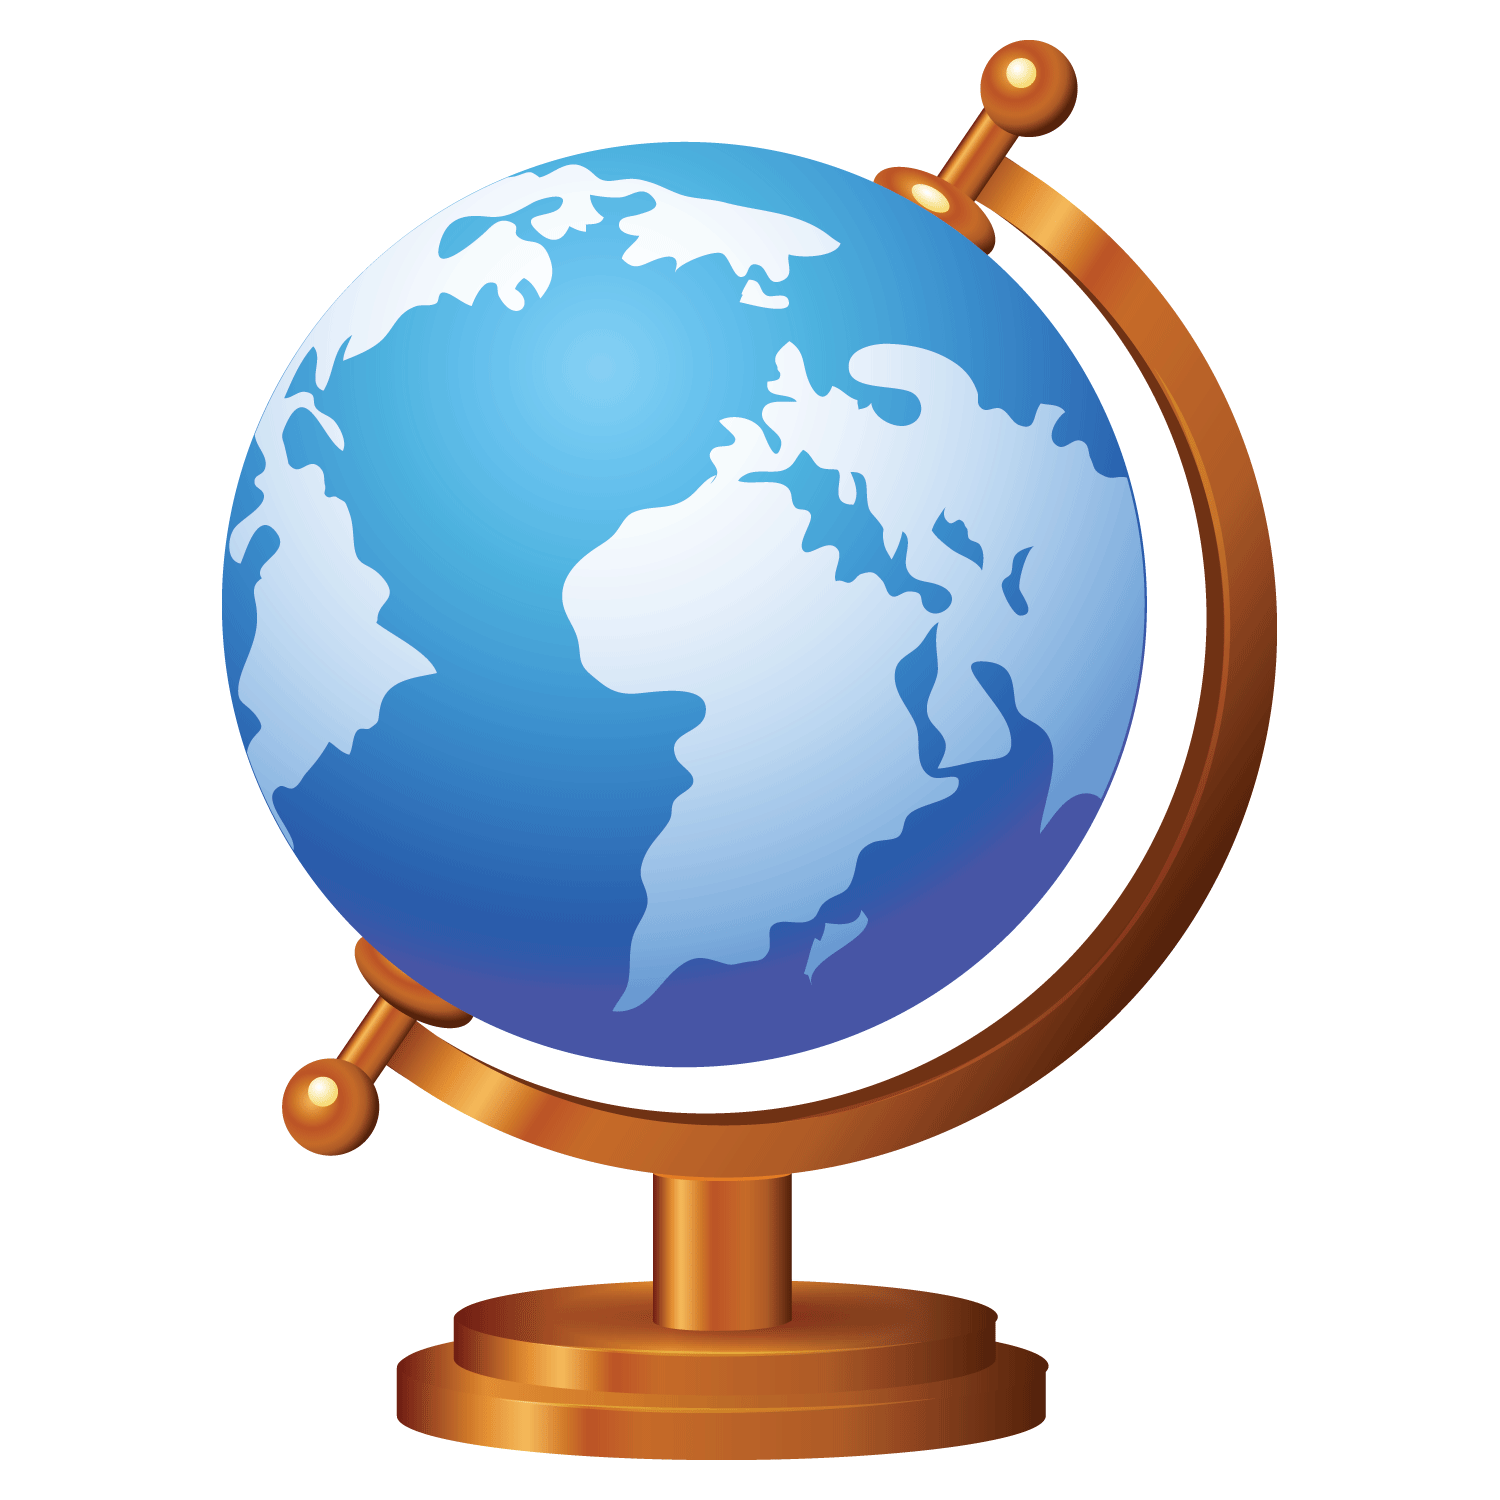 GLOBE_WITH_STAND